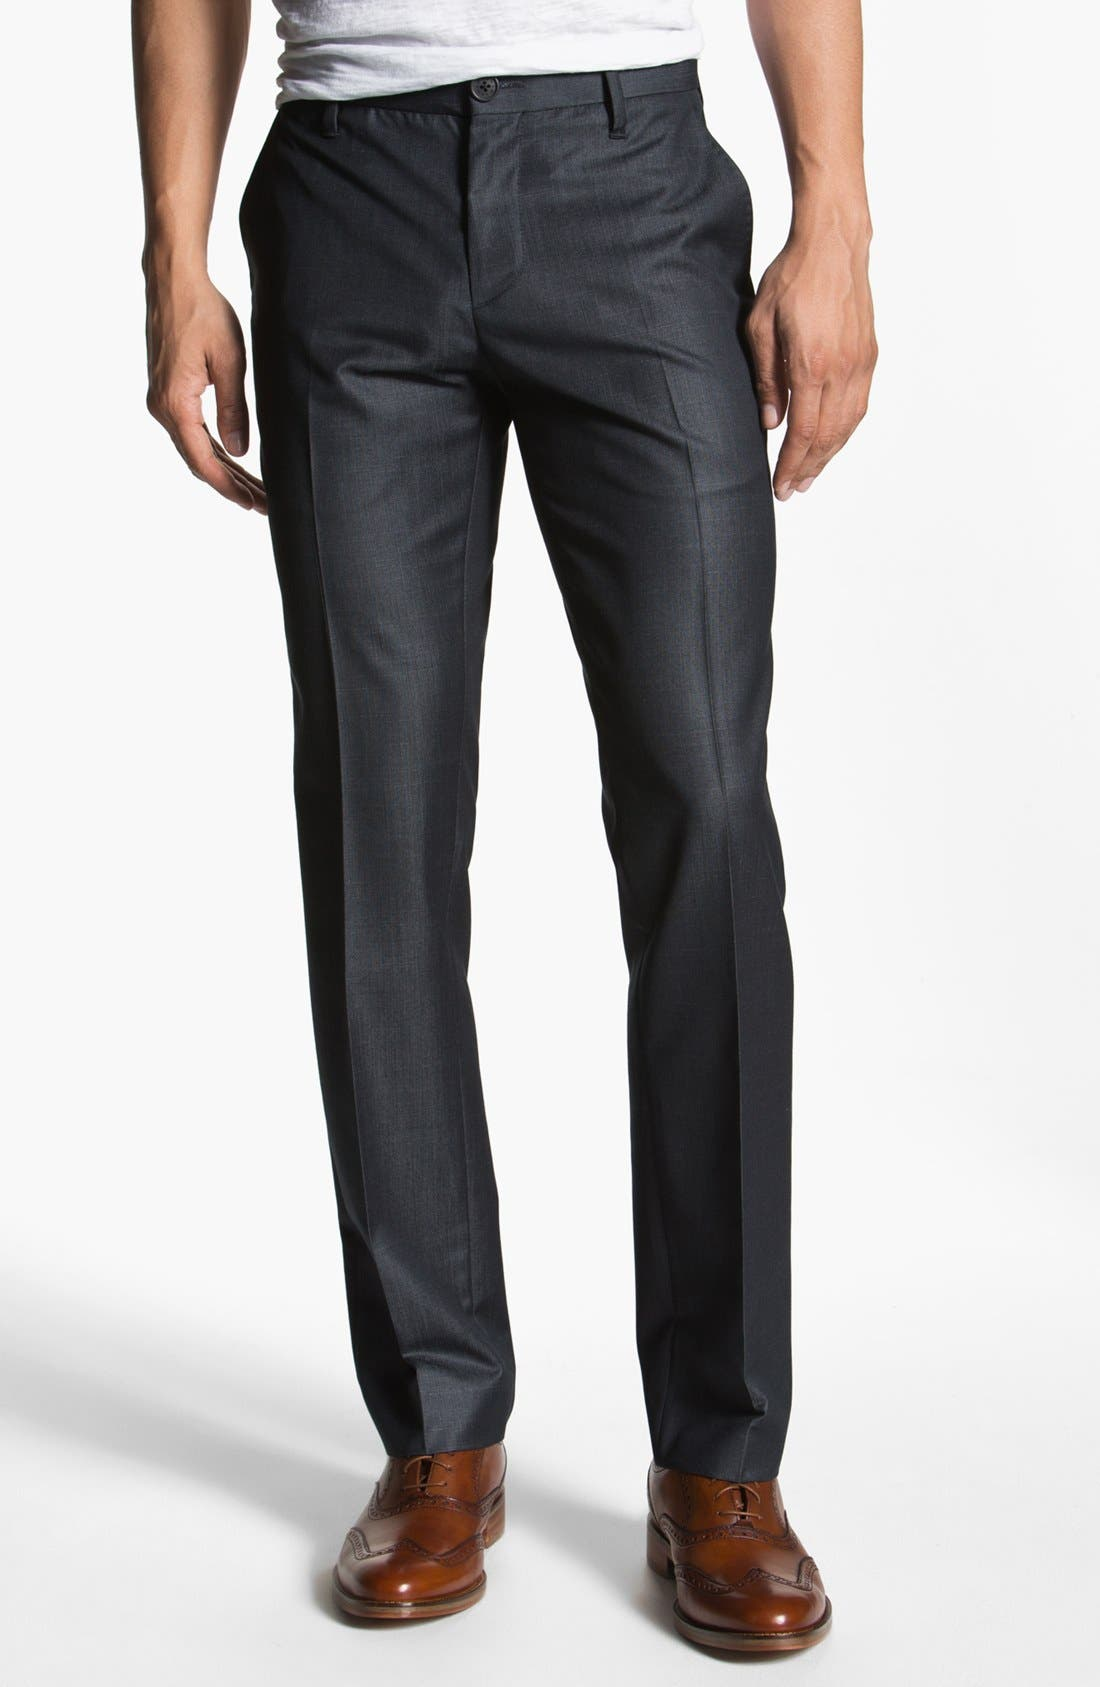 Alternate Image 1 Selected - Howe 'The Finest' Flat Front Pants